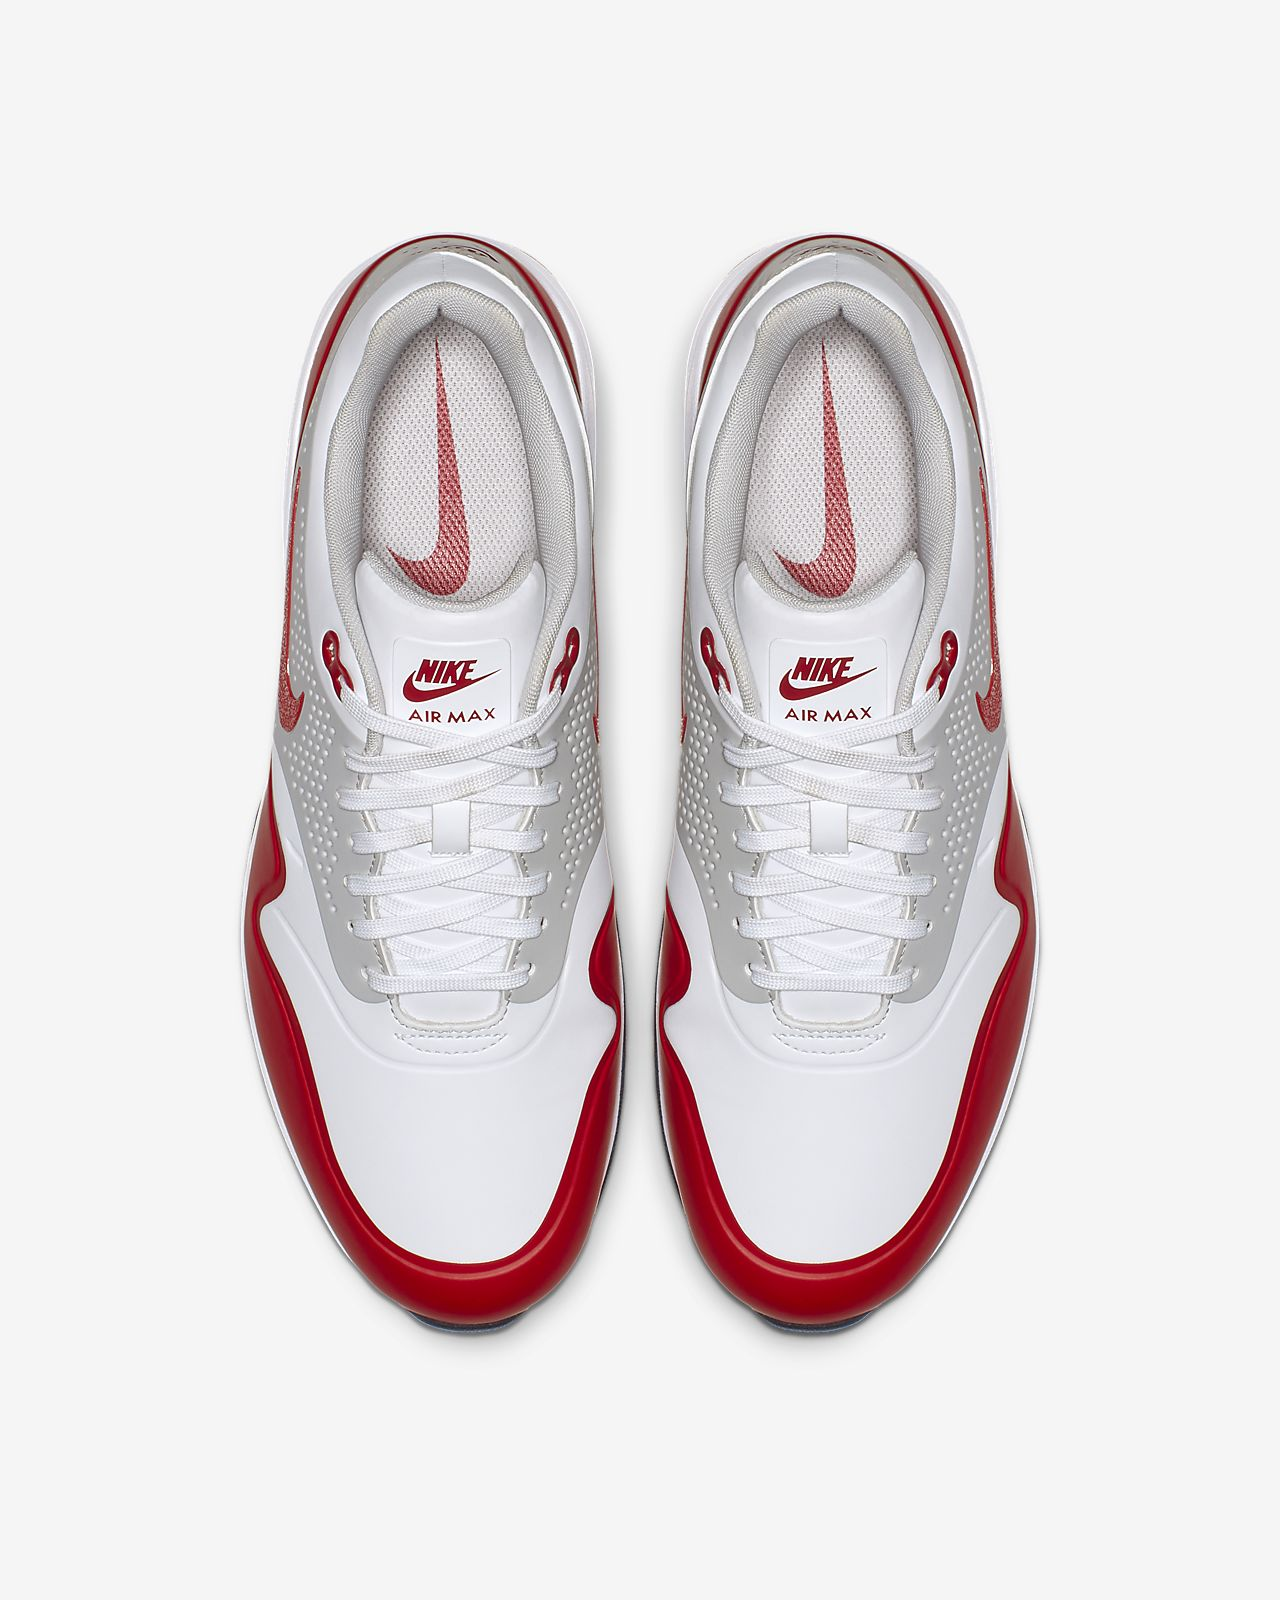 promo code bfb96 b7c66 ... Nike Air Max 1 G Men s Golf Shoe